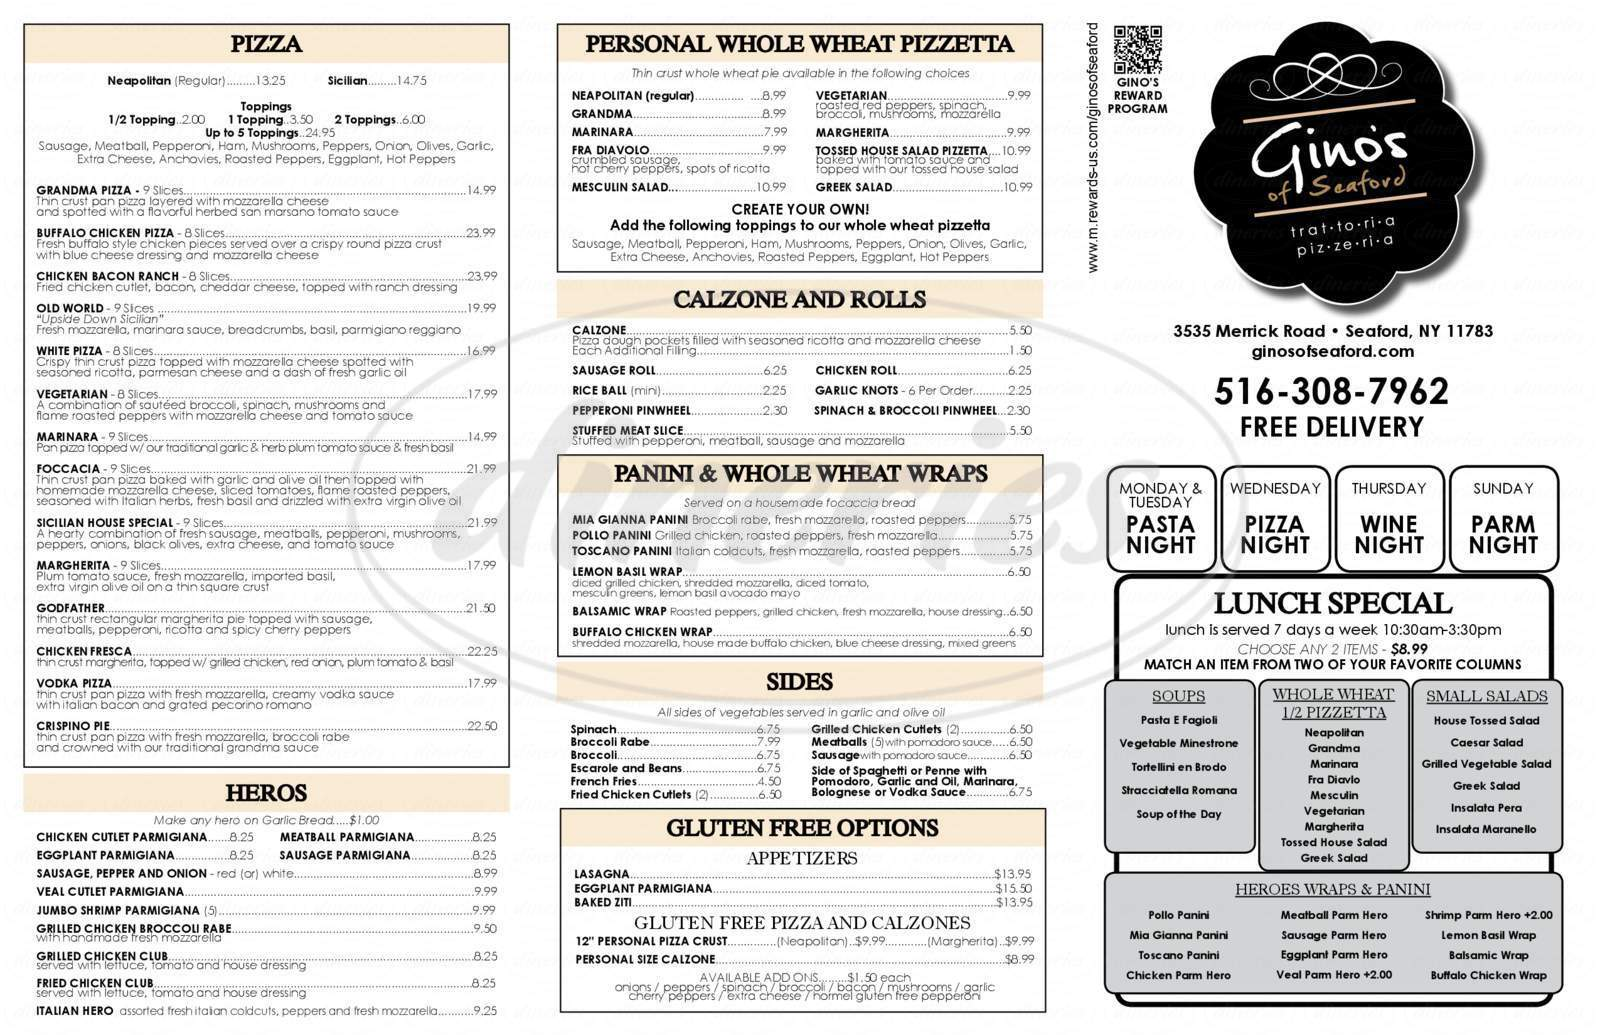 menu for Gino's Pizza